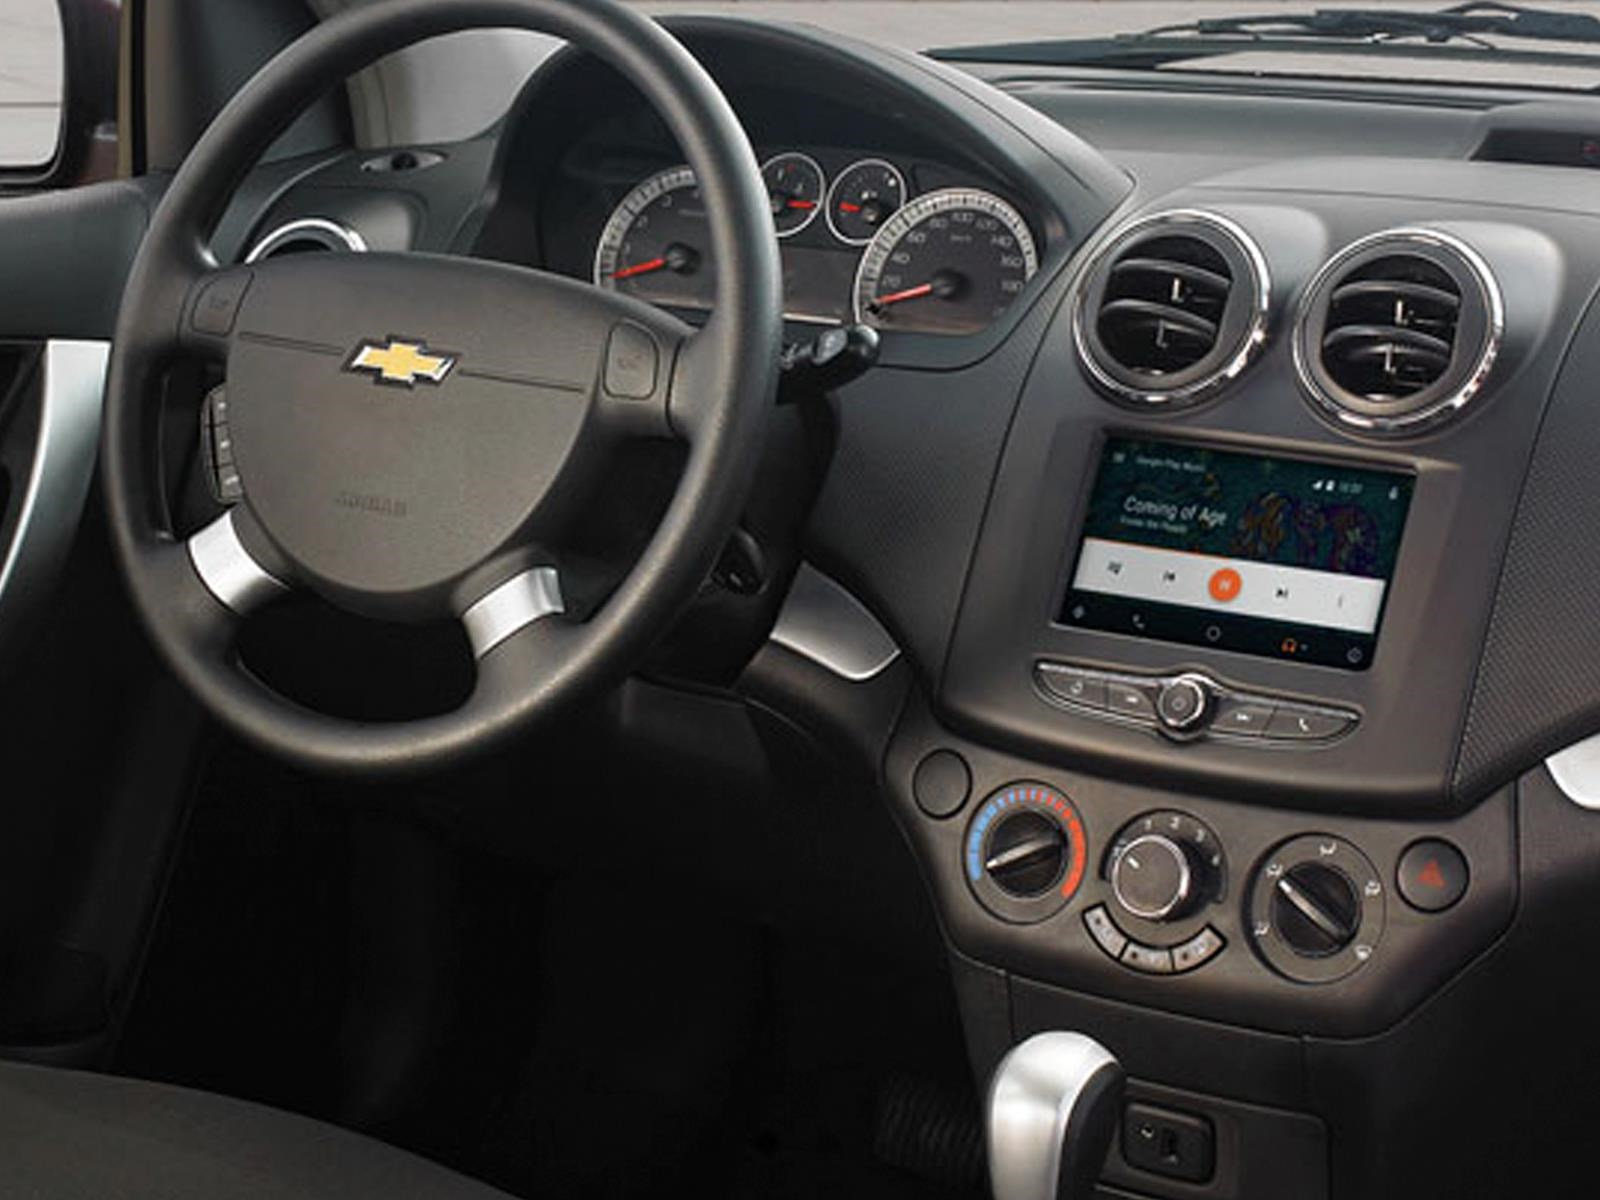 2013 chevy aveo with Chevrolet Aveo 2018 Llega A Mexico Desde 198600 Pesos on Watch moreover Chevrolet Aveo 1 4 Ltz Review also Watch also Chevrolet Chevy Van 6 2 1986 Specs And Images also Watch.